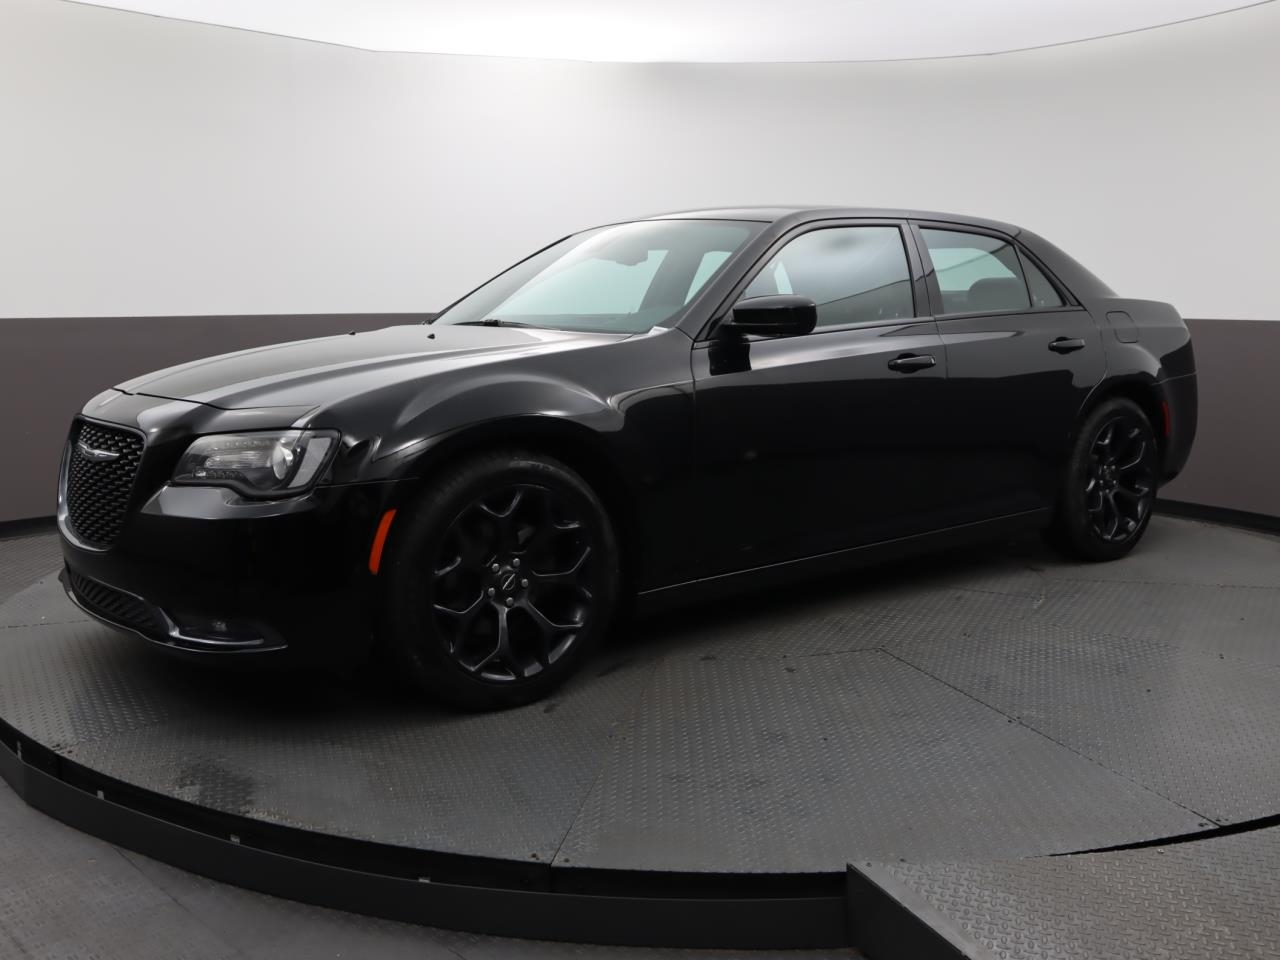 Used CHRYSLER 300 2019 MARGATE 300S